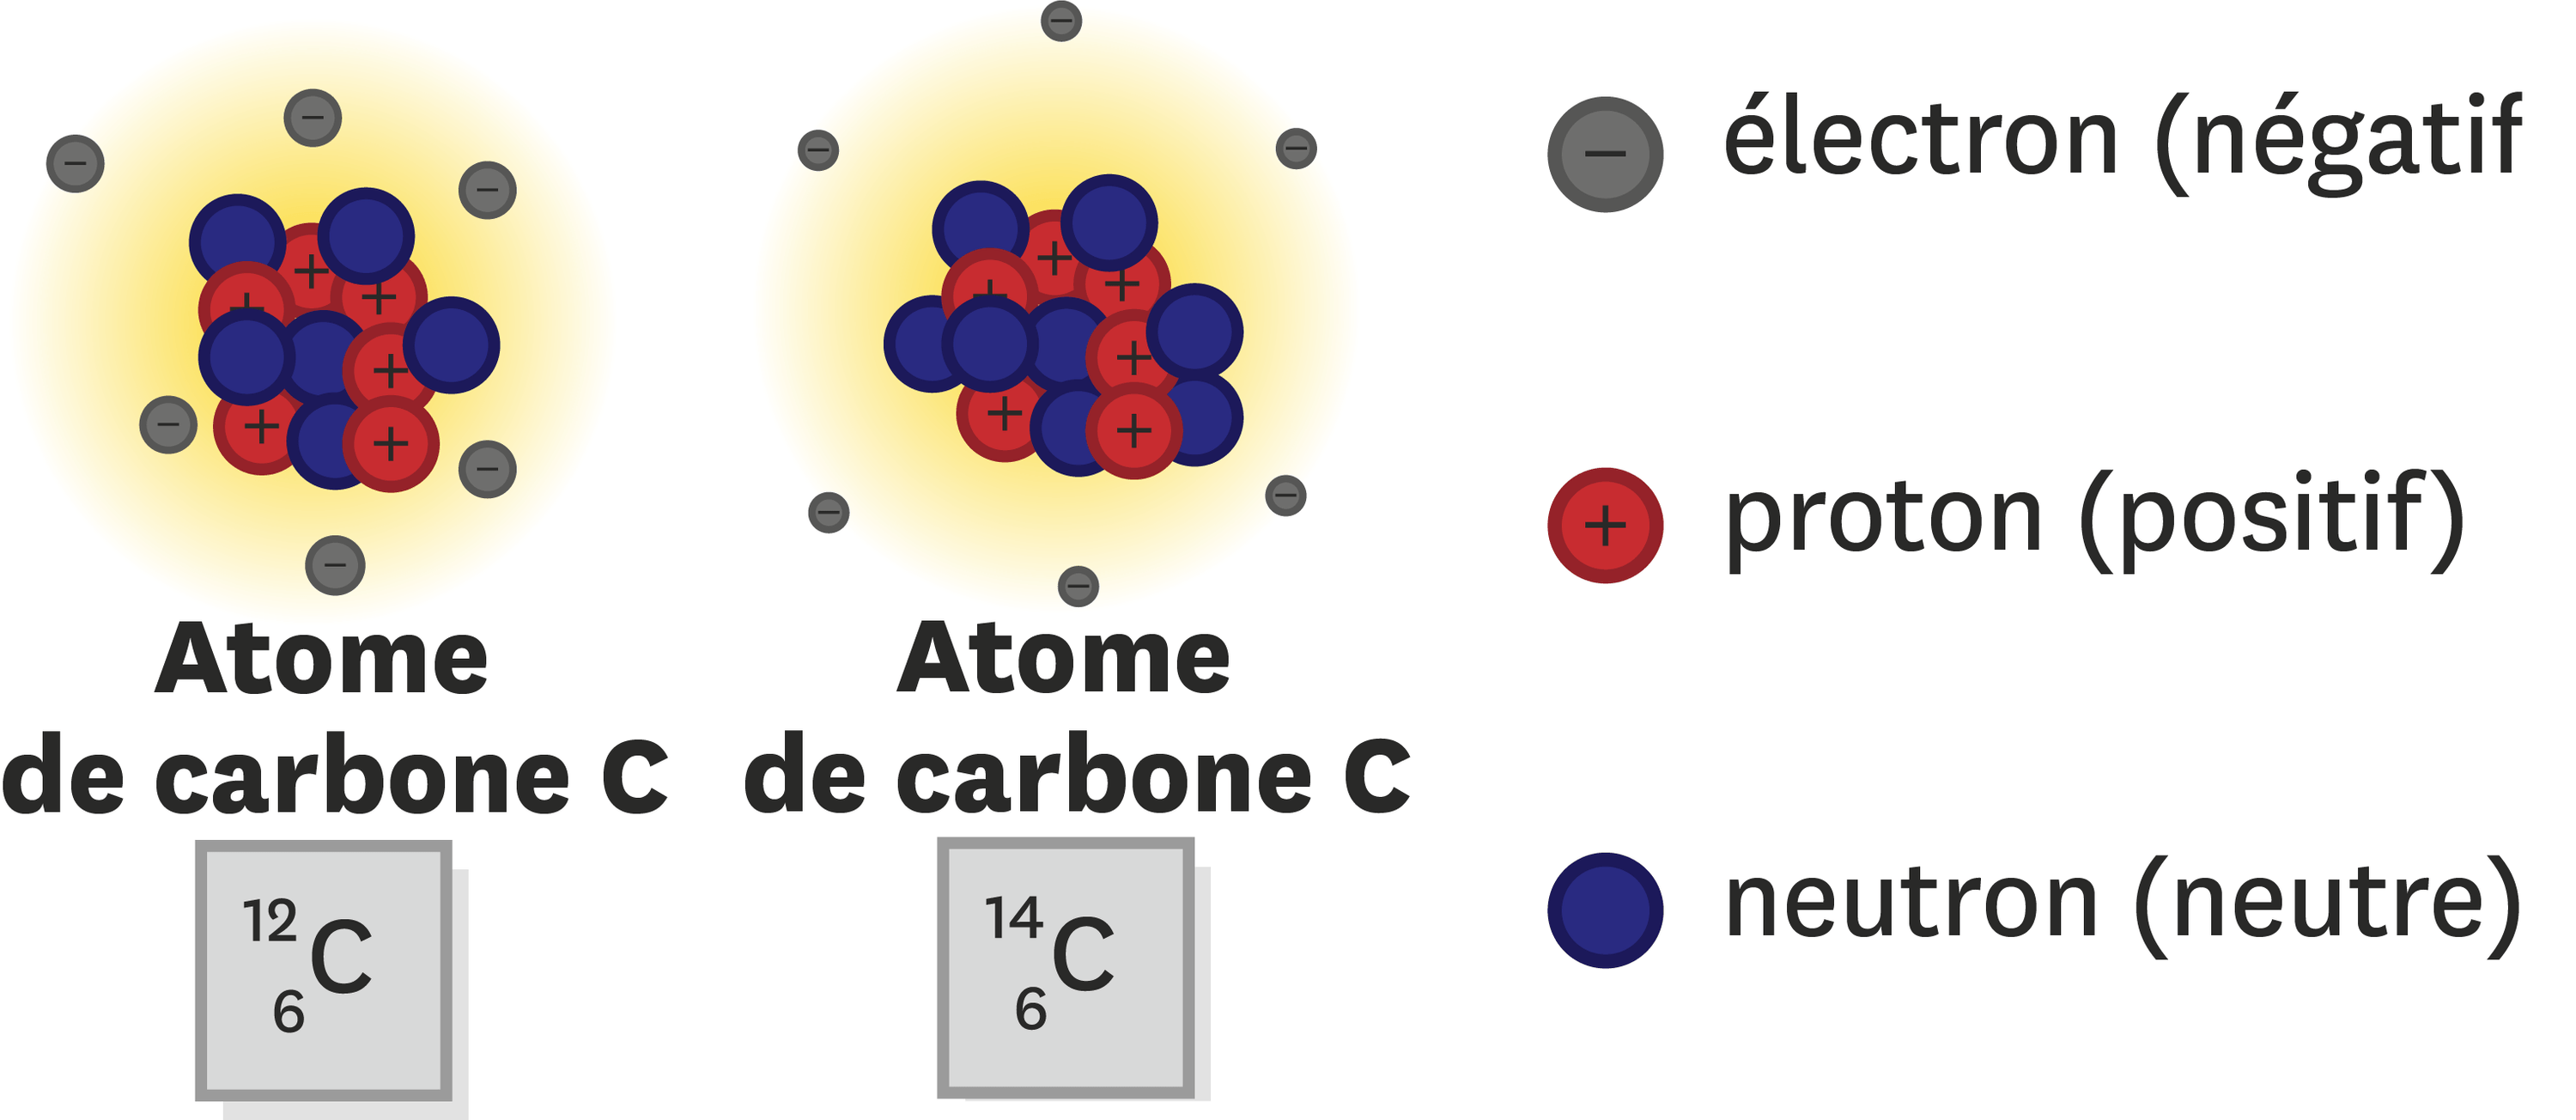 <stamp theme='pc-green1'>Doc. 3</stamp> Description de la composition des atomes de carbone 12 (de symbole 12C) et carbone  (de symbole 14C).